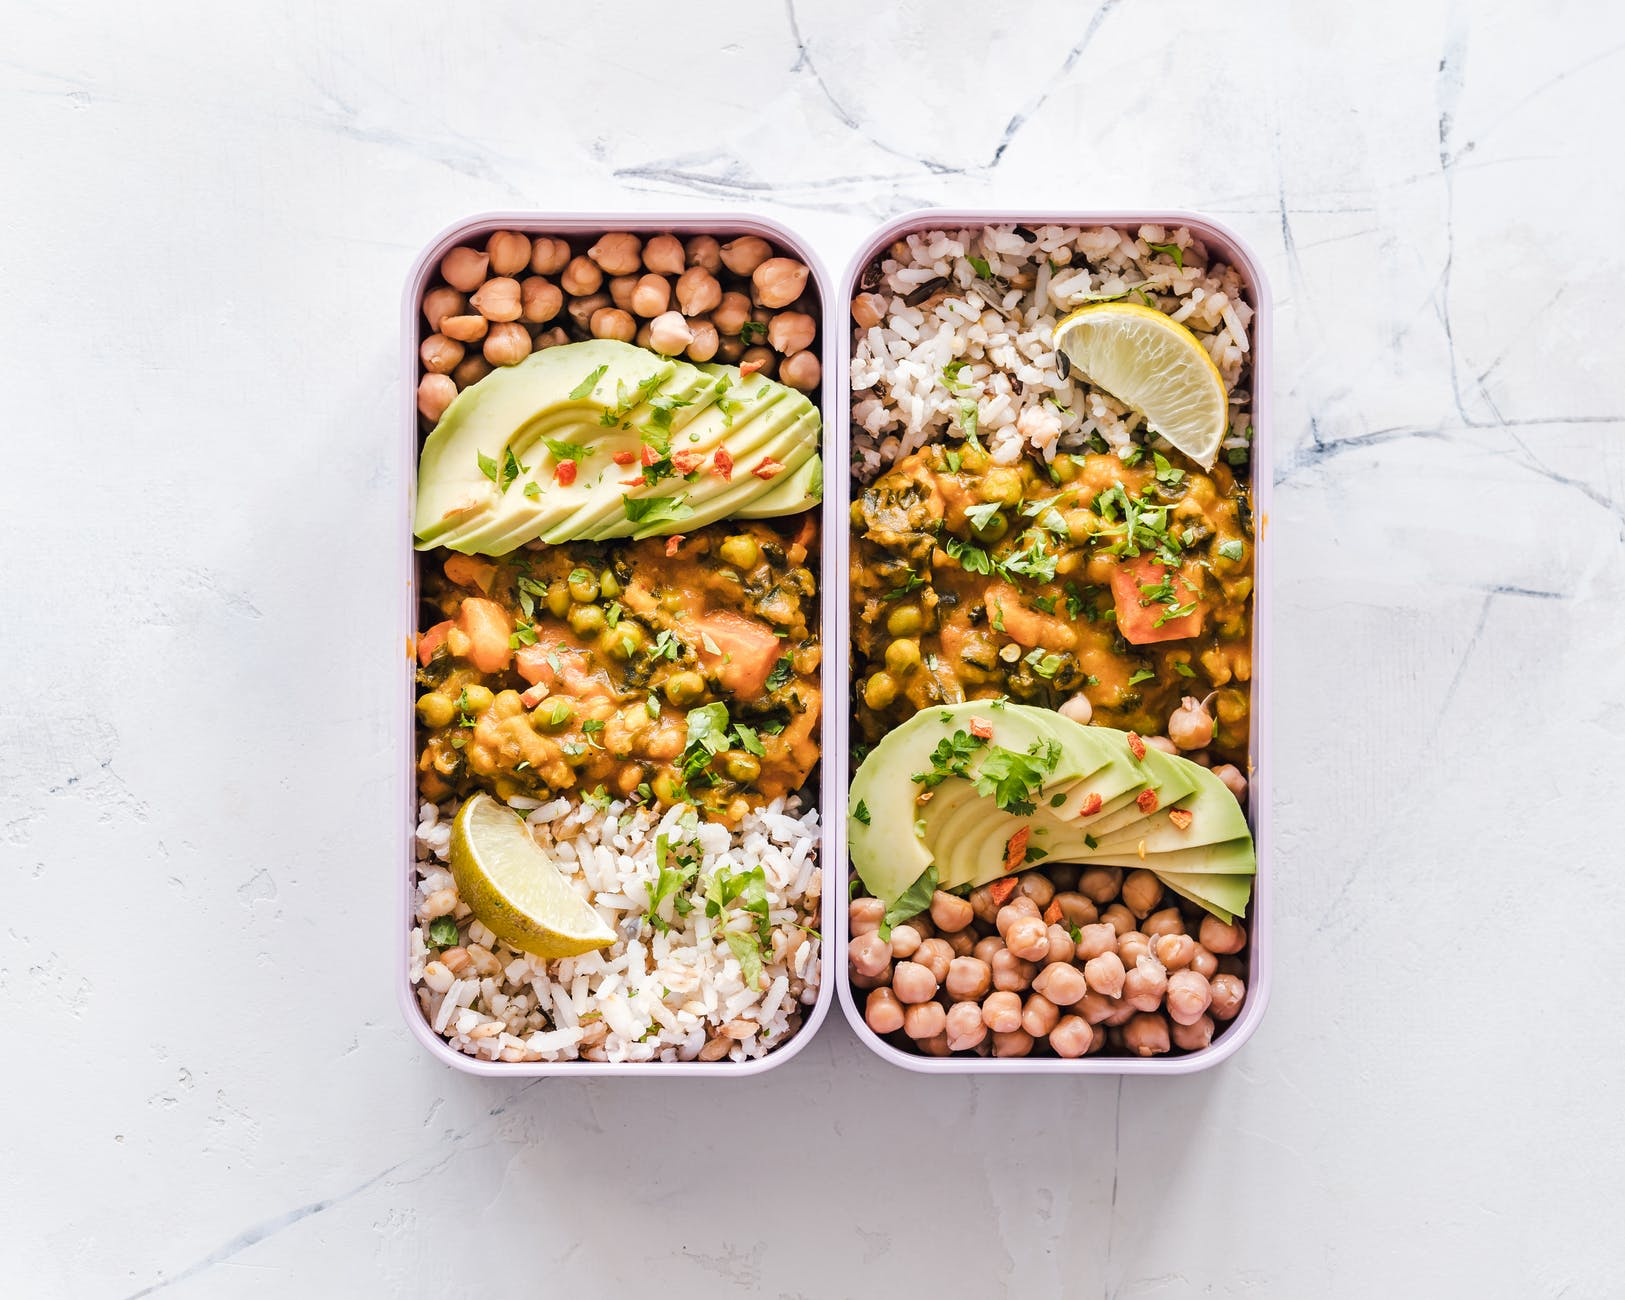 flat lay photography of two tray of foods